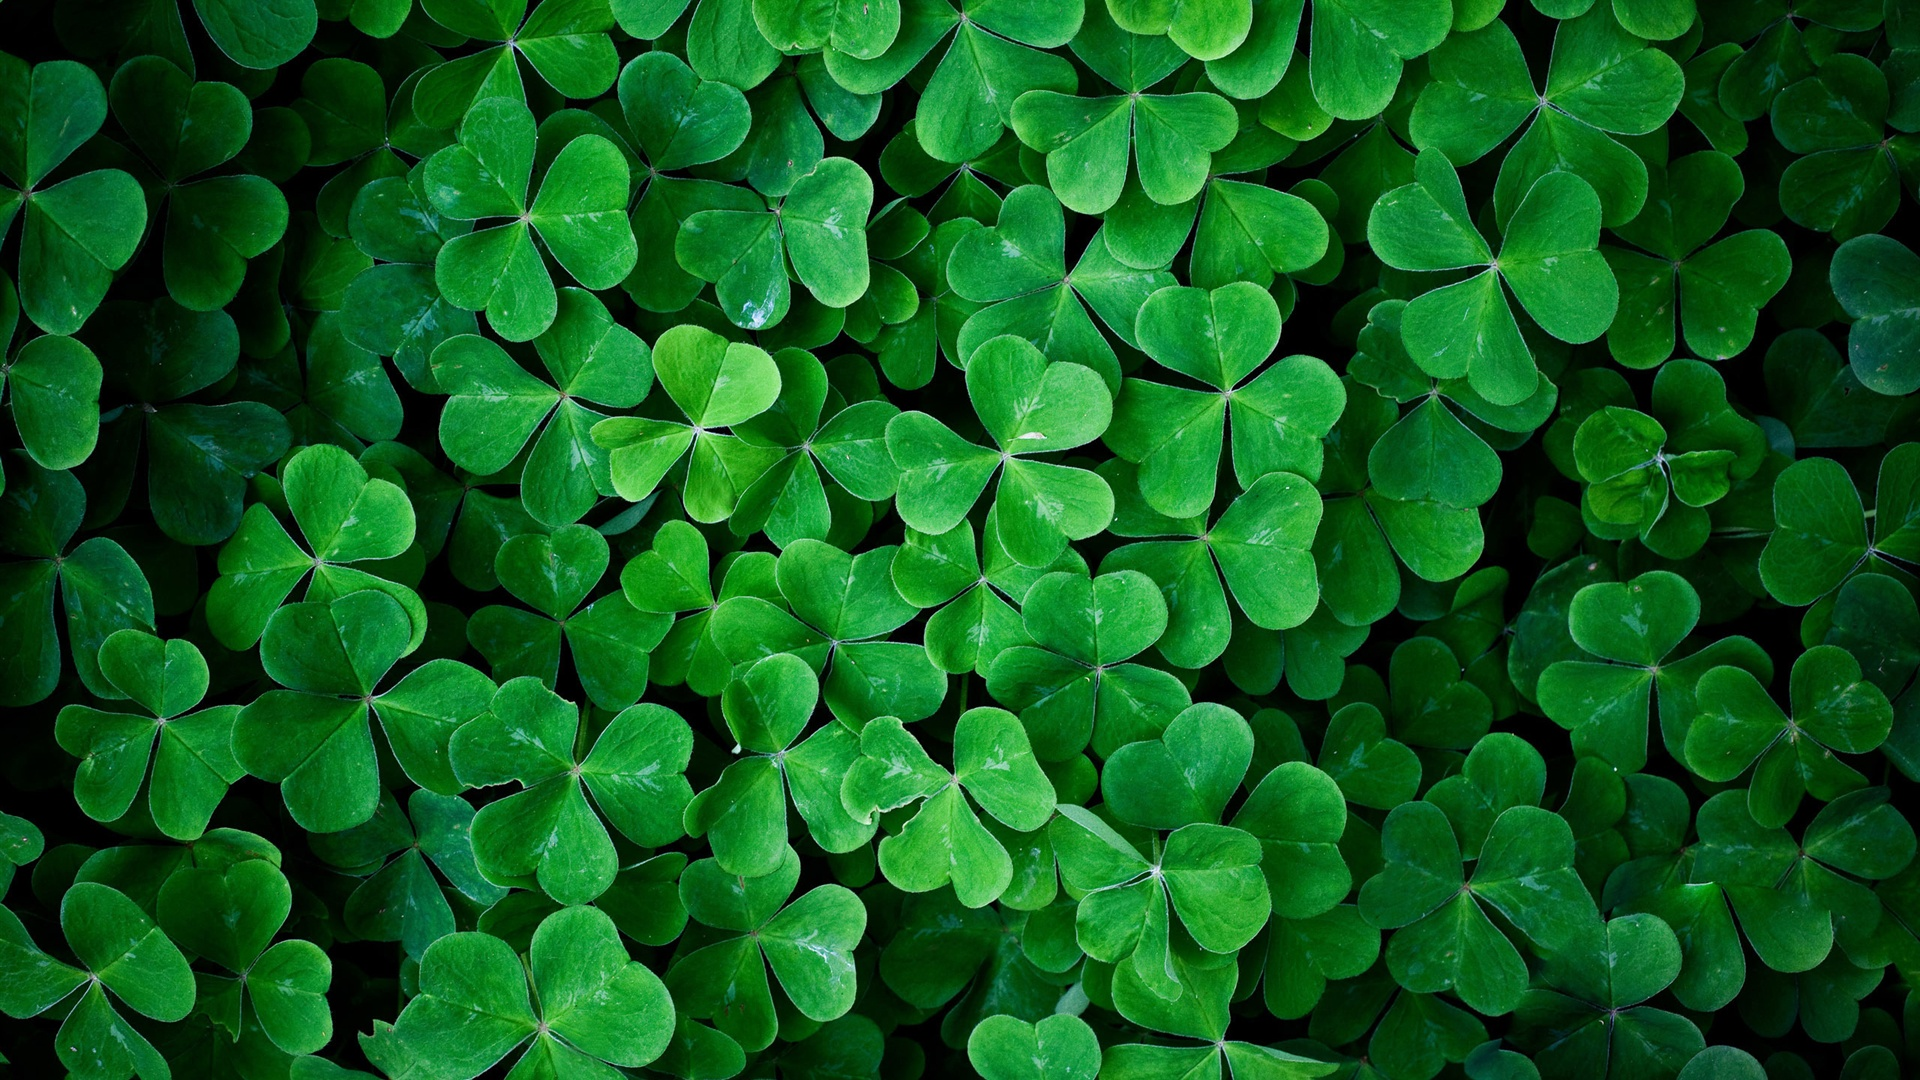 Clover-Leaves-St-Patrick-Day-wallpaper-wpc9003629